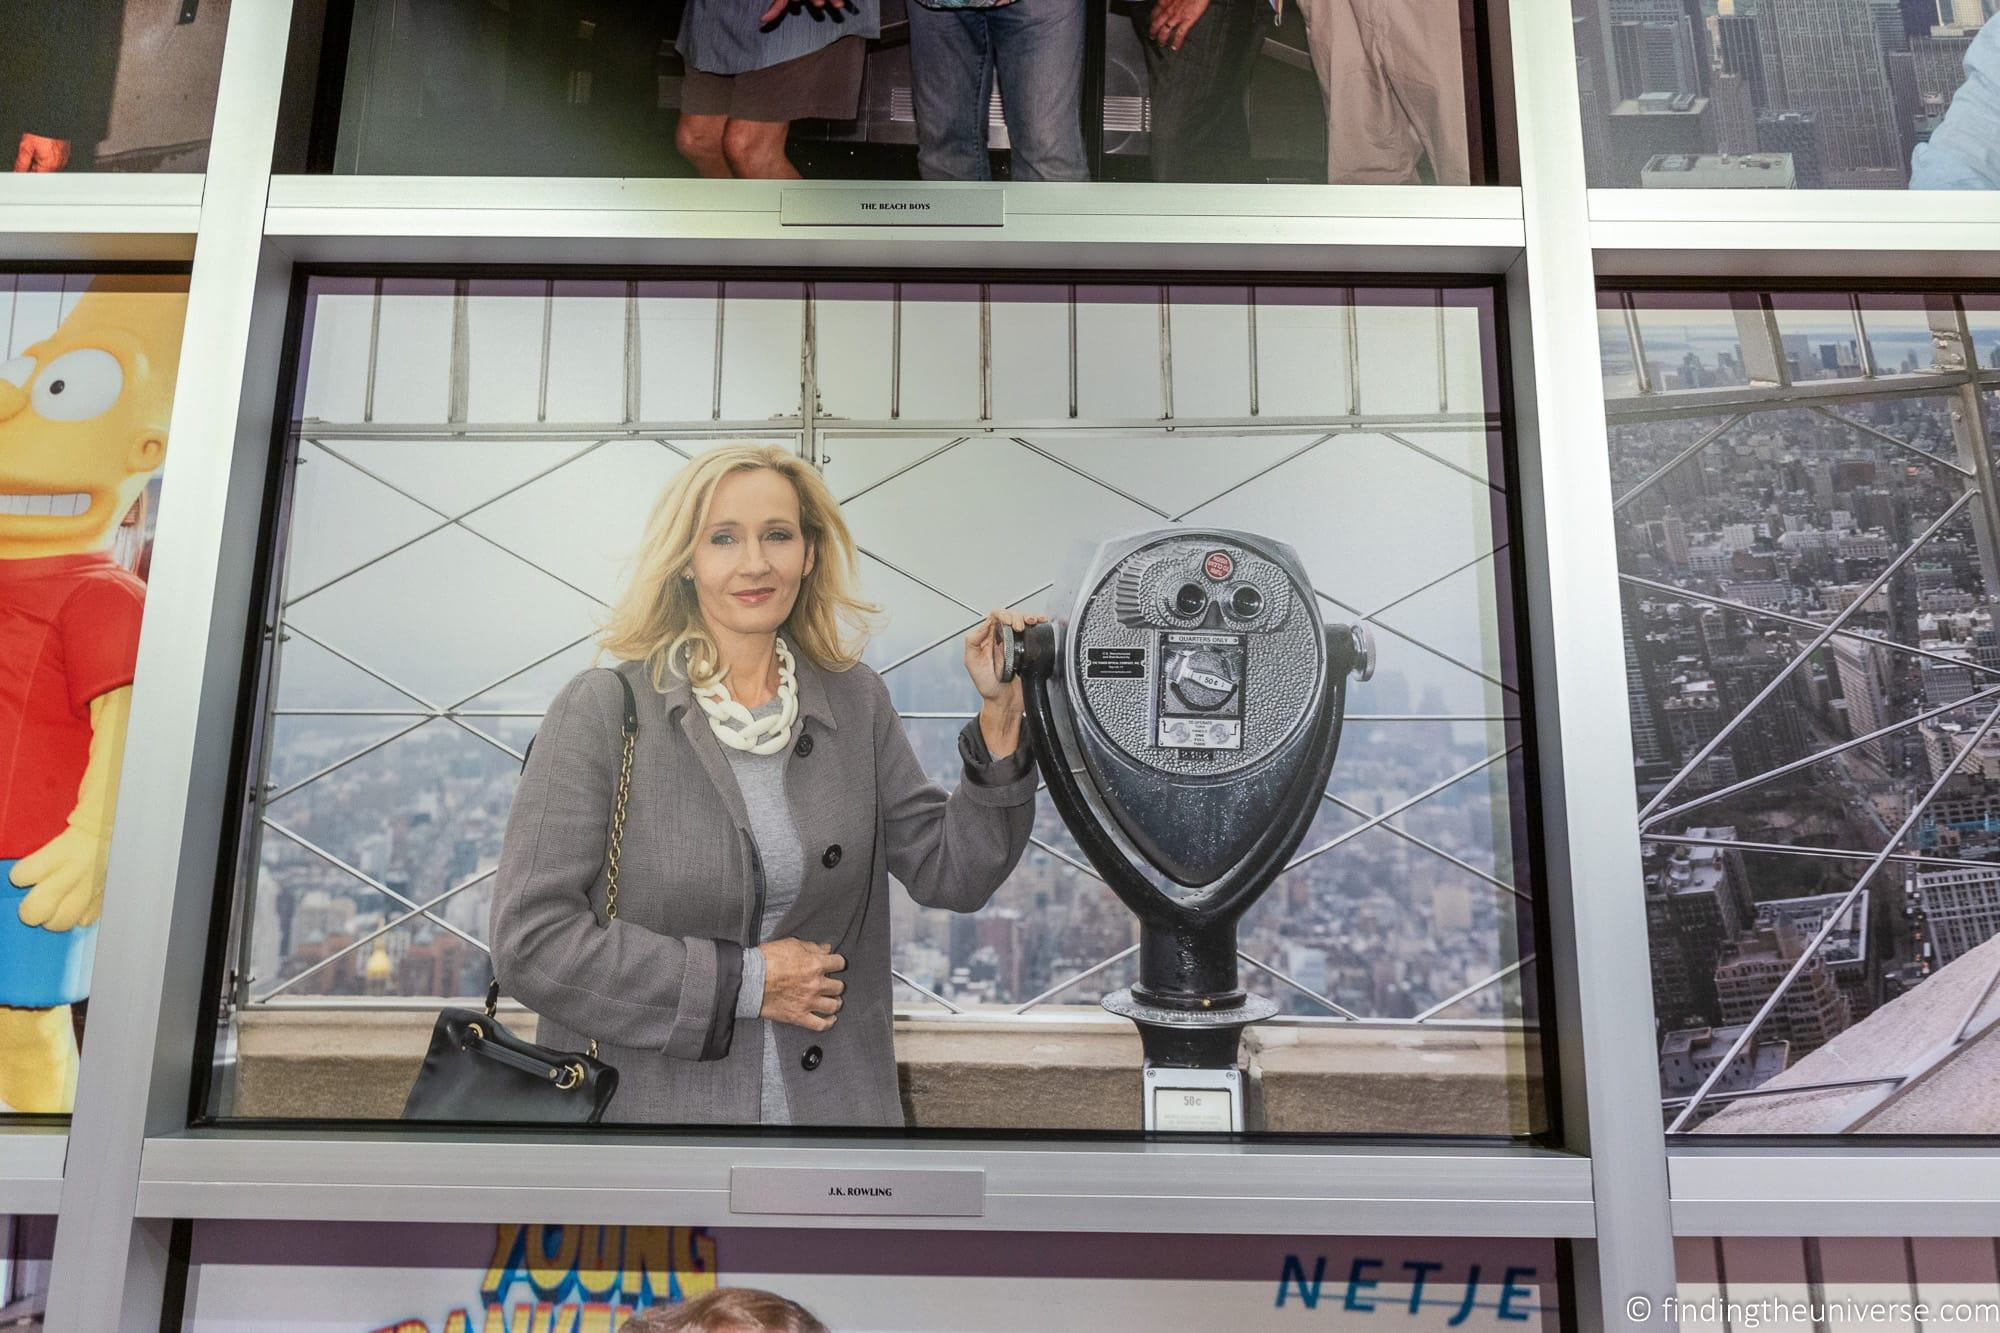 JK Rowling at Empire State Building